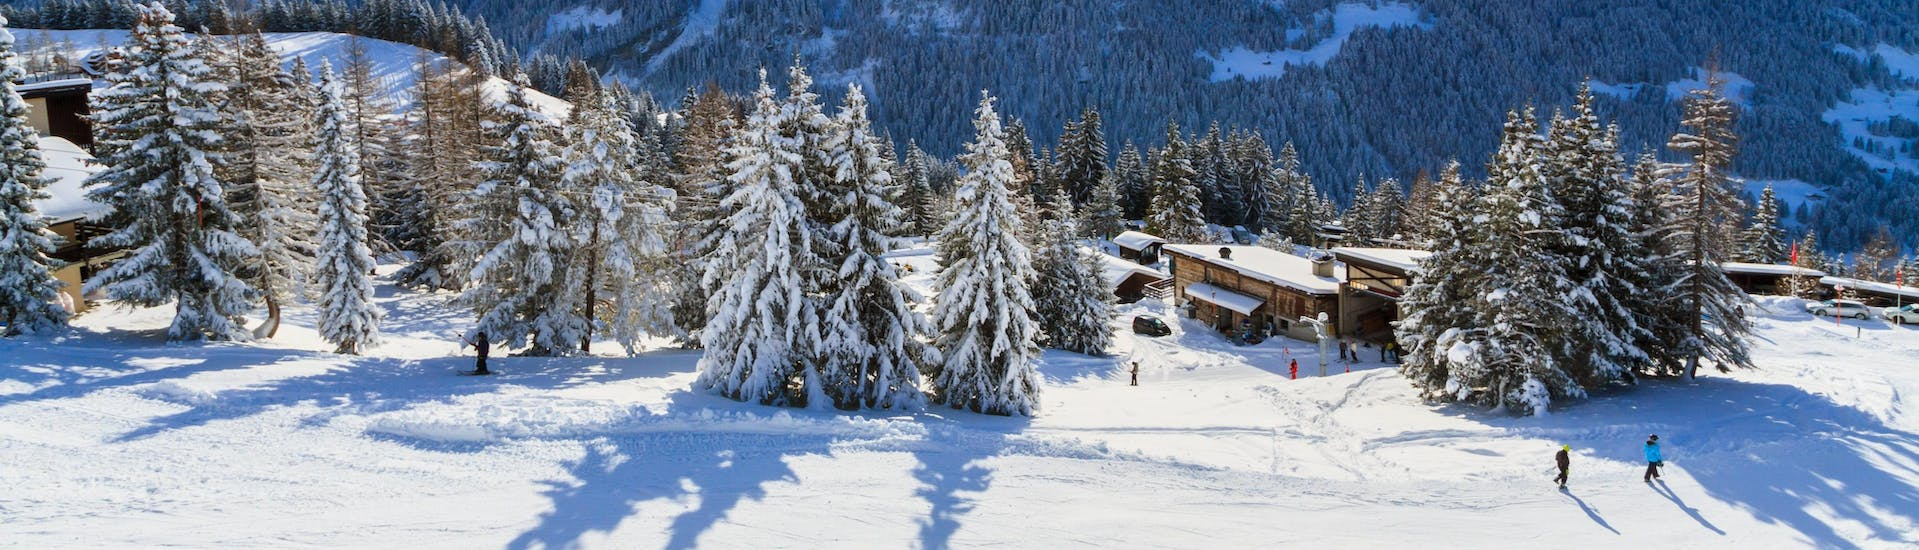 A panoramic view of the ski slopes and the surrounding mountains of Villars, a popular Swiss ski resort where visitors can book ski lessons with one of the local ski schools.